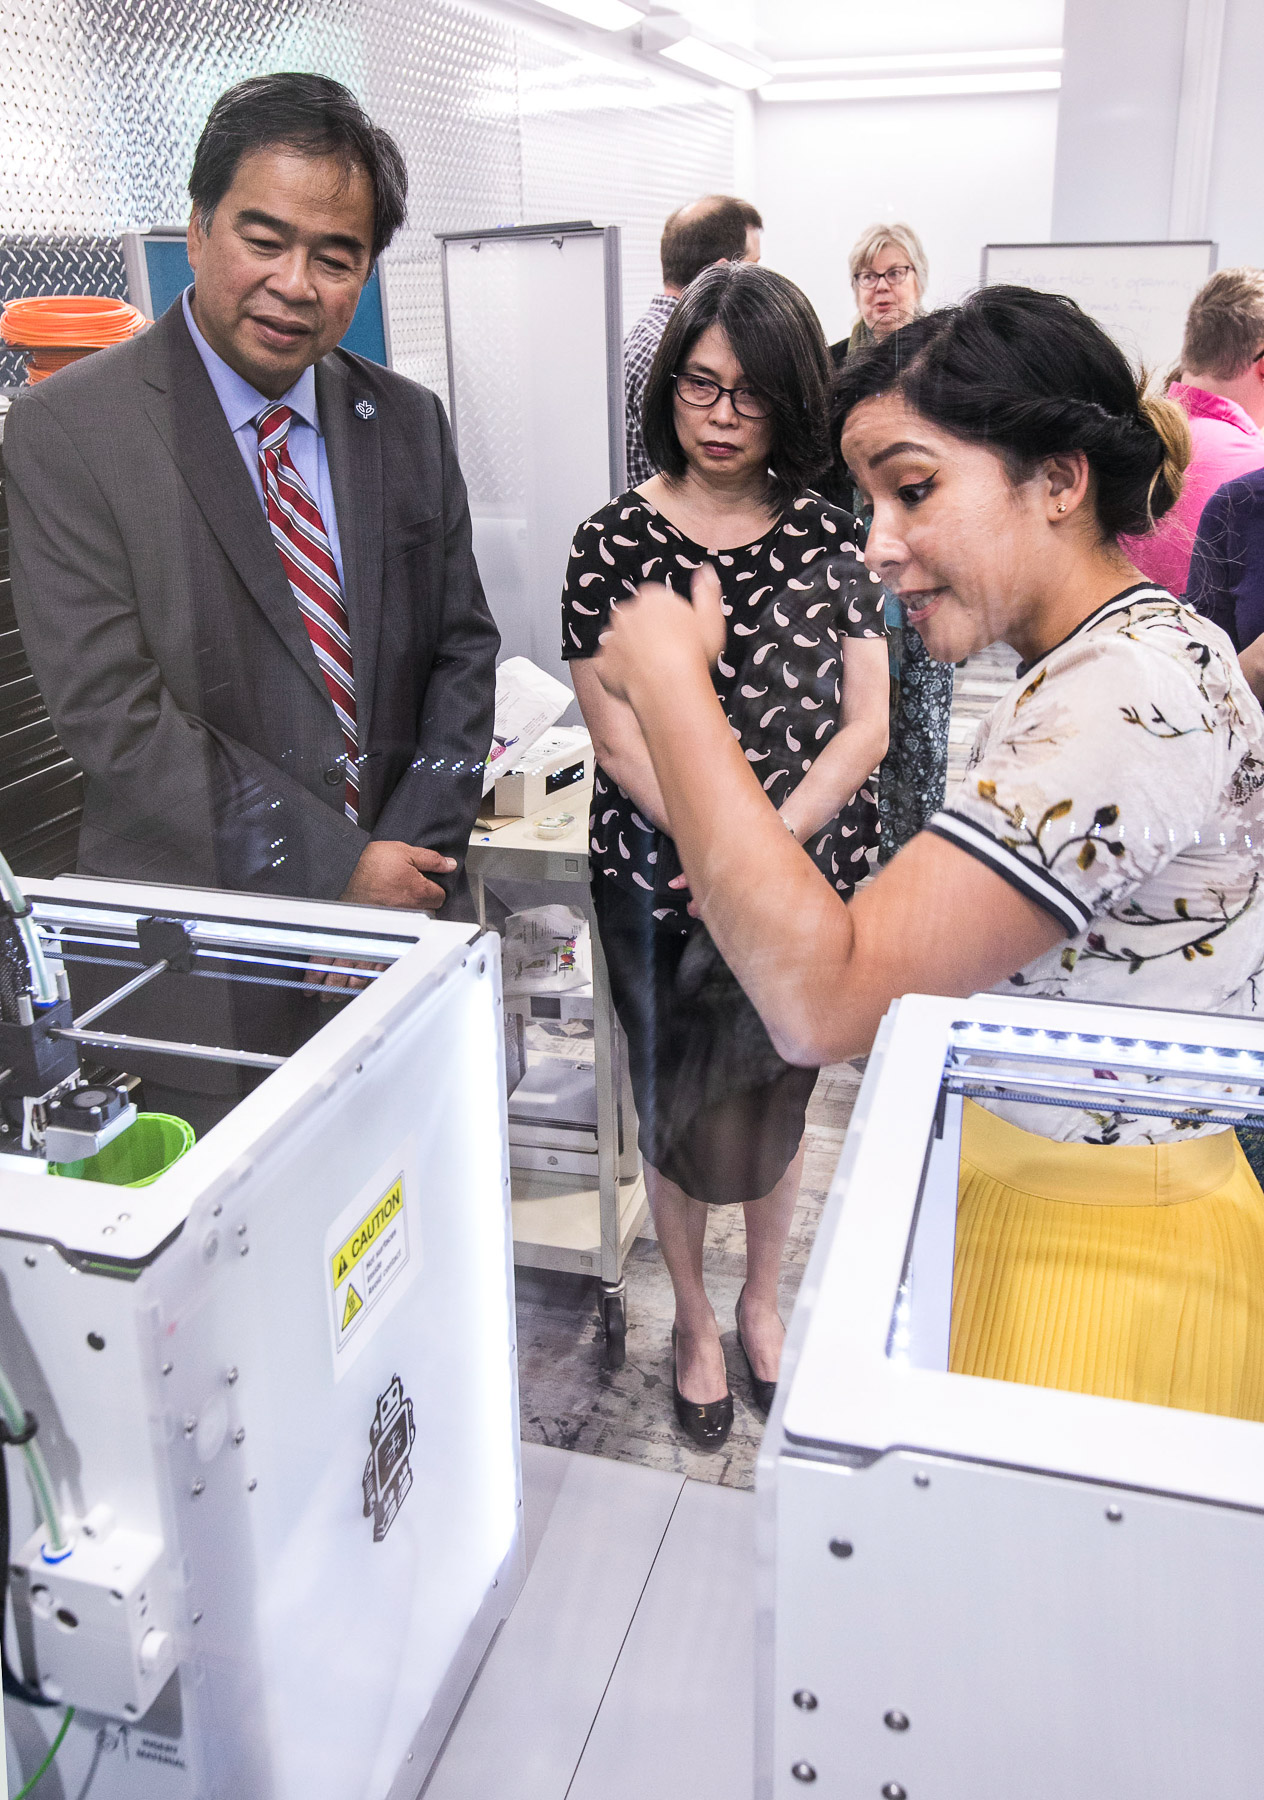 Janice Scurio, right, shows off one of the 3D printers available in the new maker space to DePaul University President A. Gabriel Esteban, Ph.D., and his wife, Josephine, as they tour the newly workspaces in the Richardson Library. (DePaul University/Jamie Moncrief)